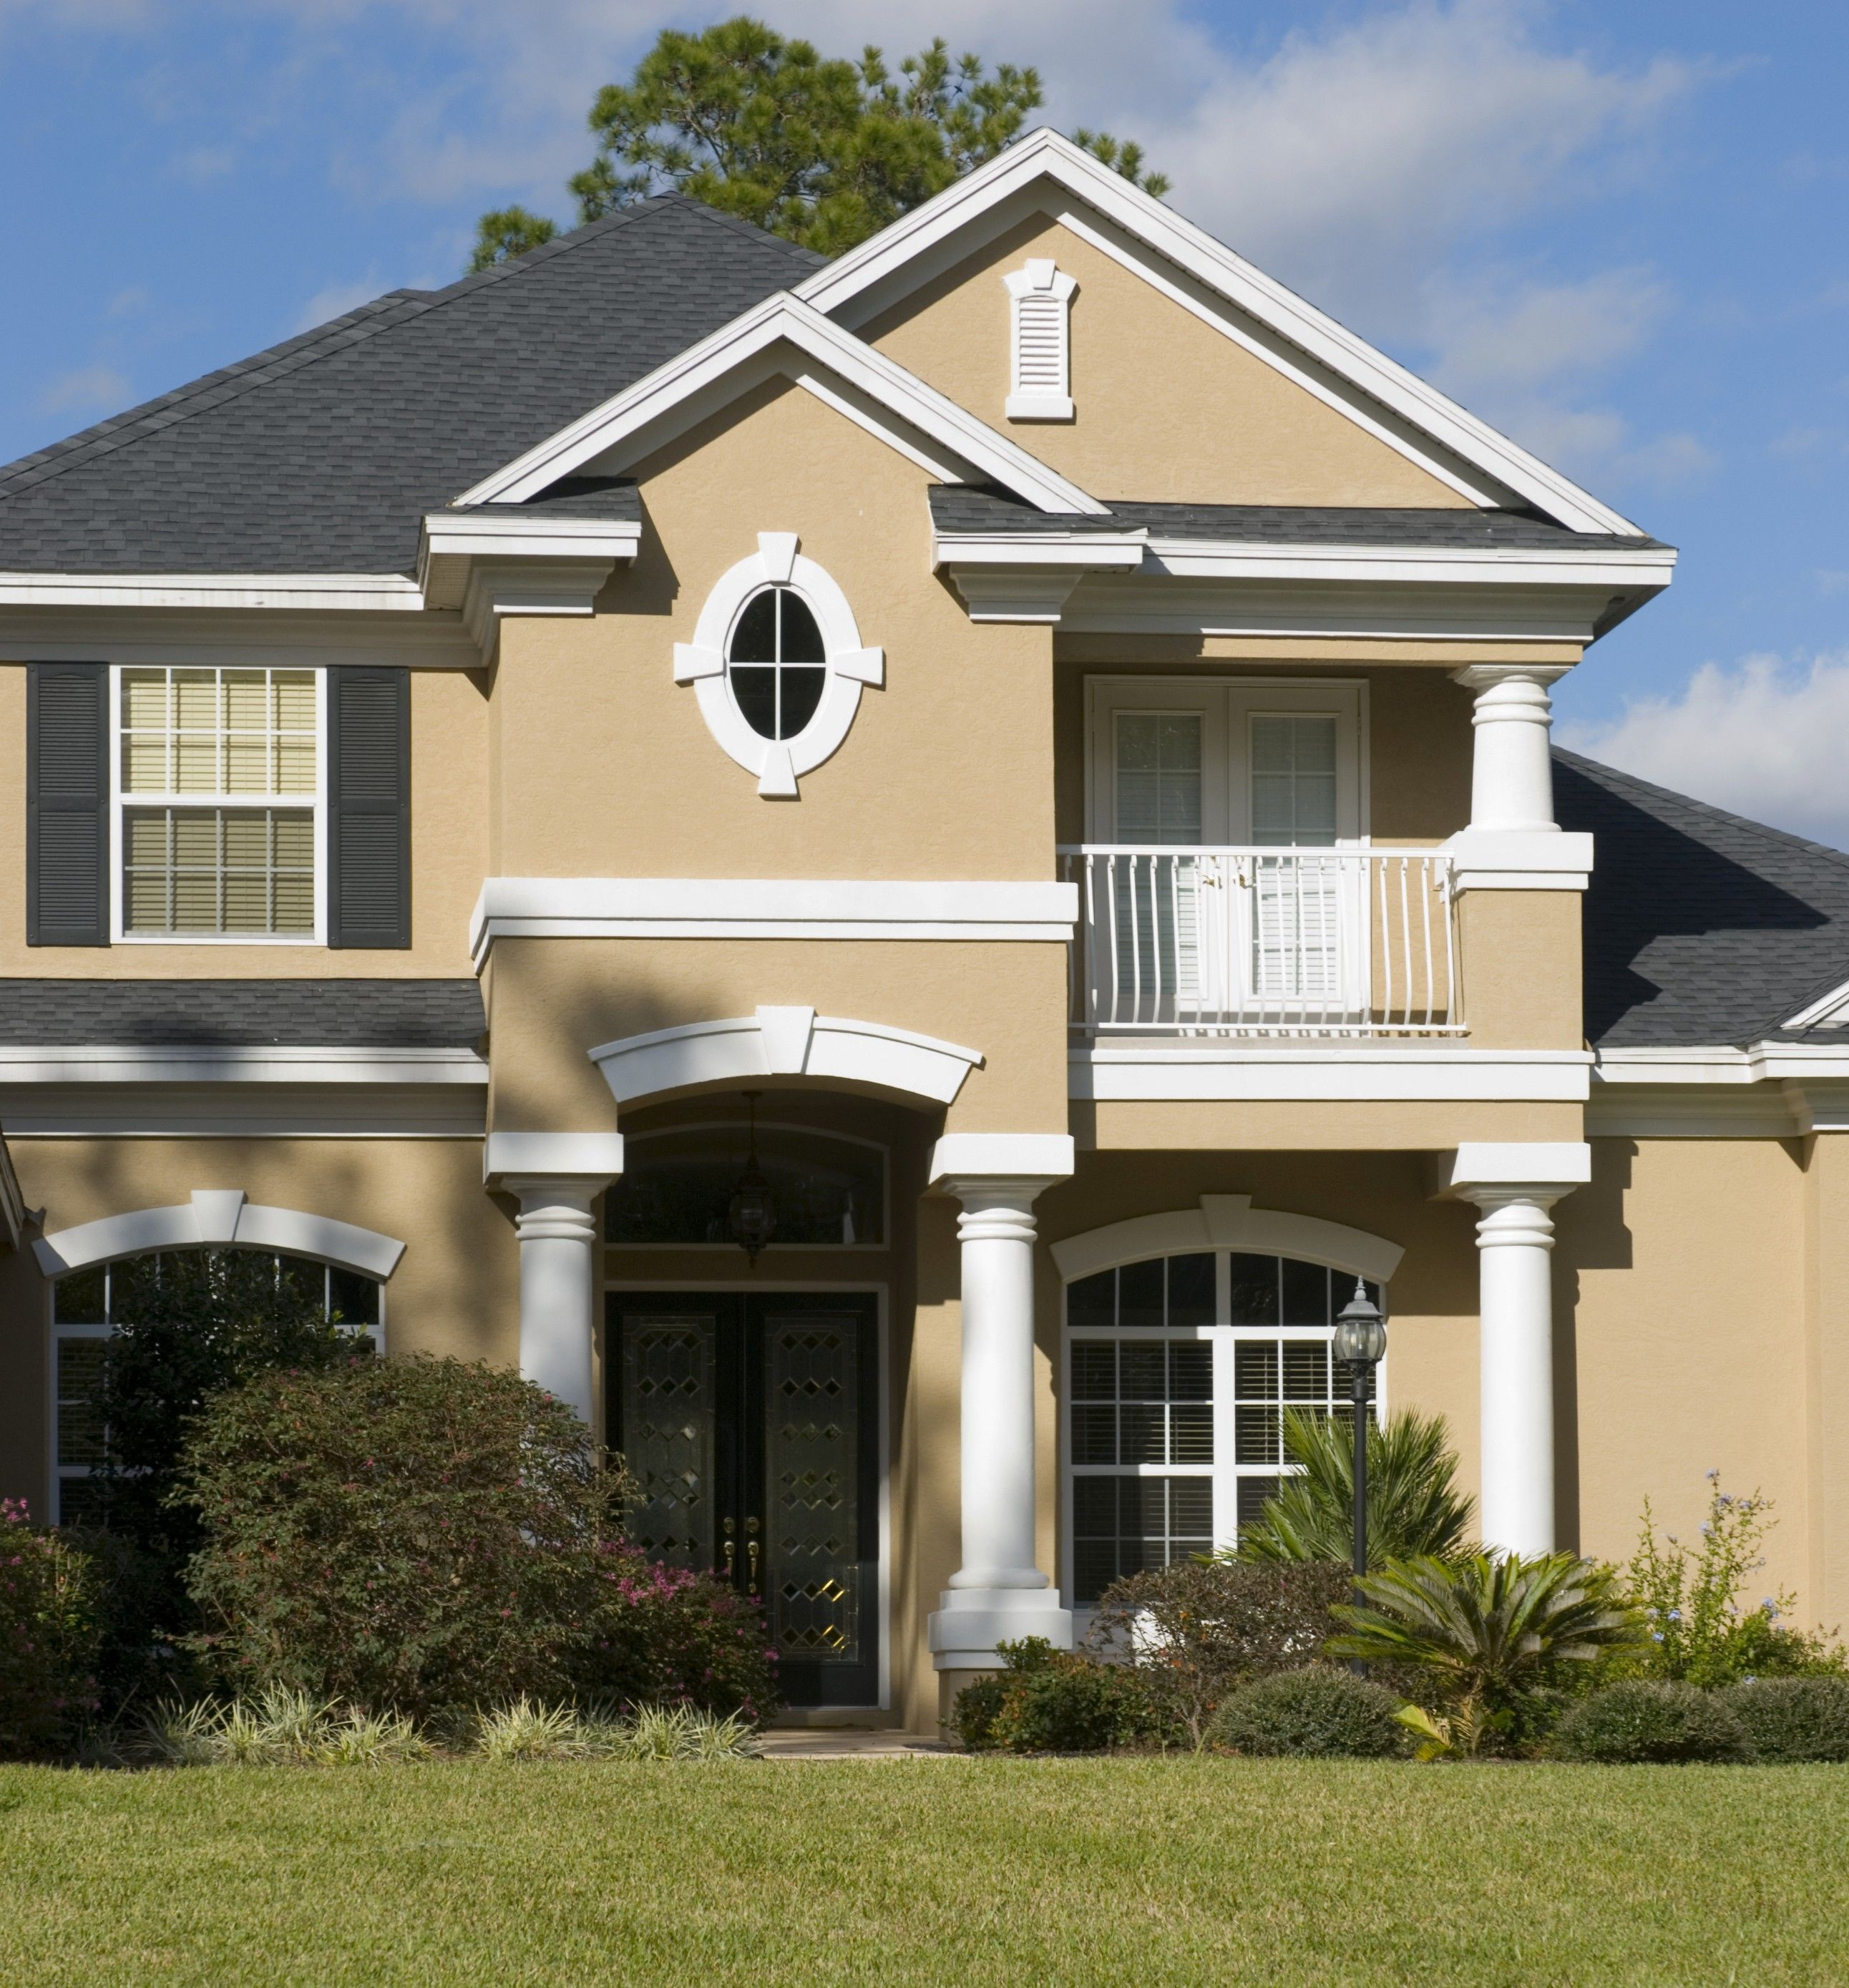 Amazing Exterior House Colors Color Chemistry And House Paint Largest Home Design Picture Inspirations Pitcheantrous